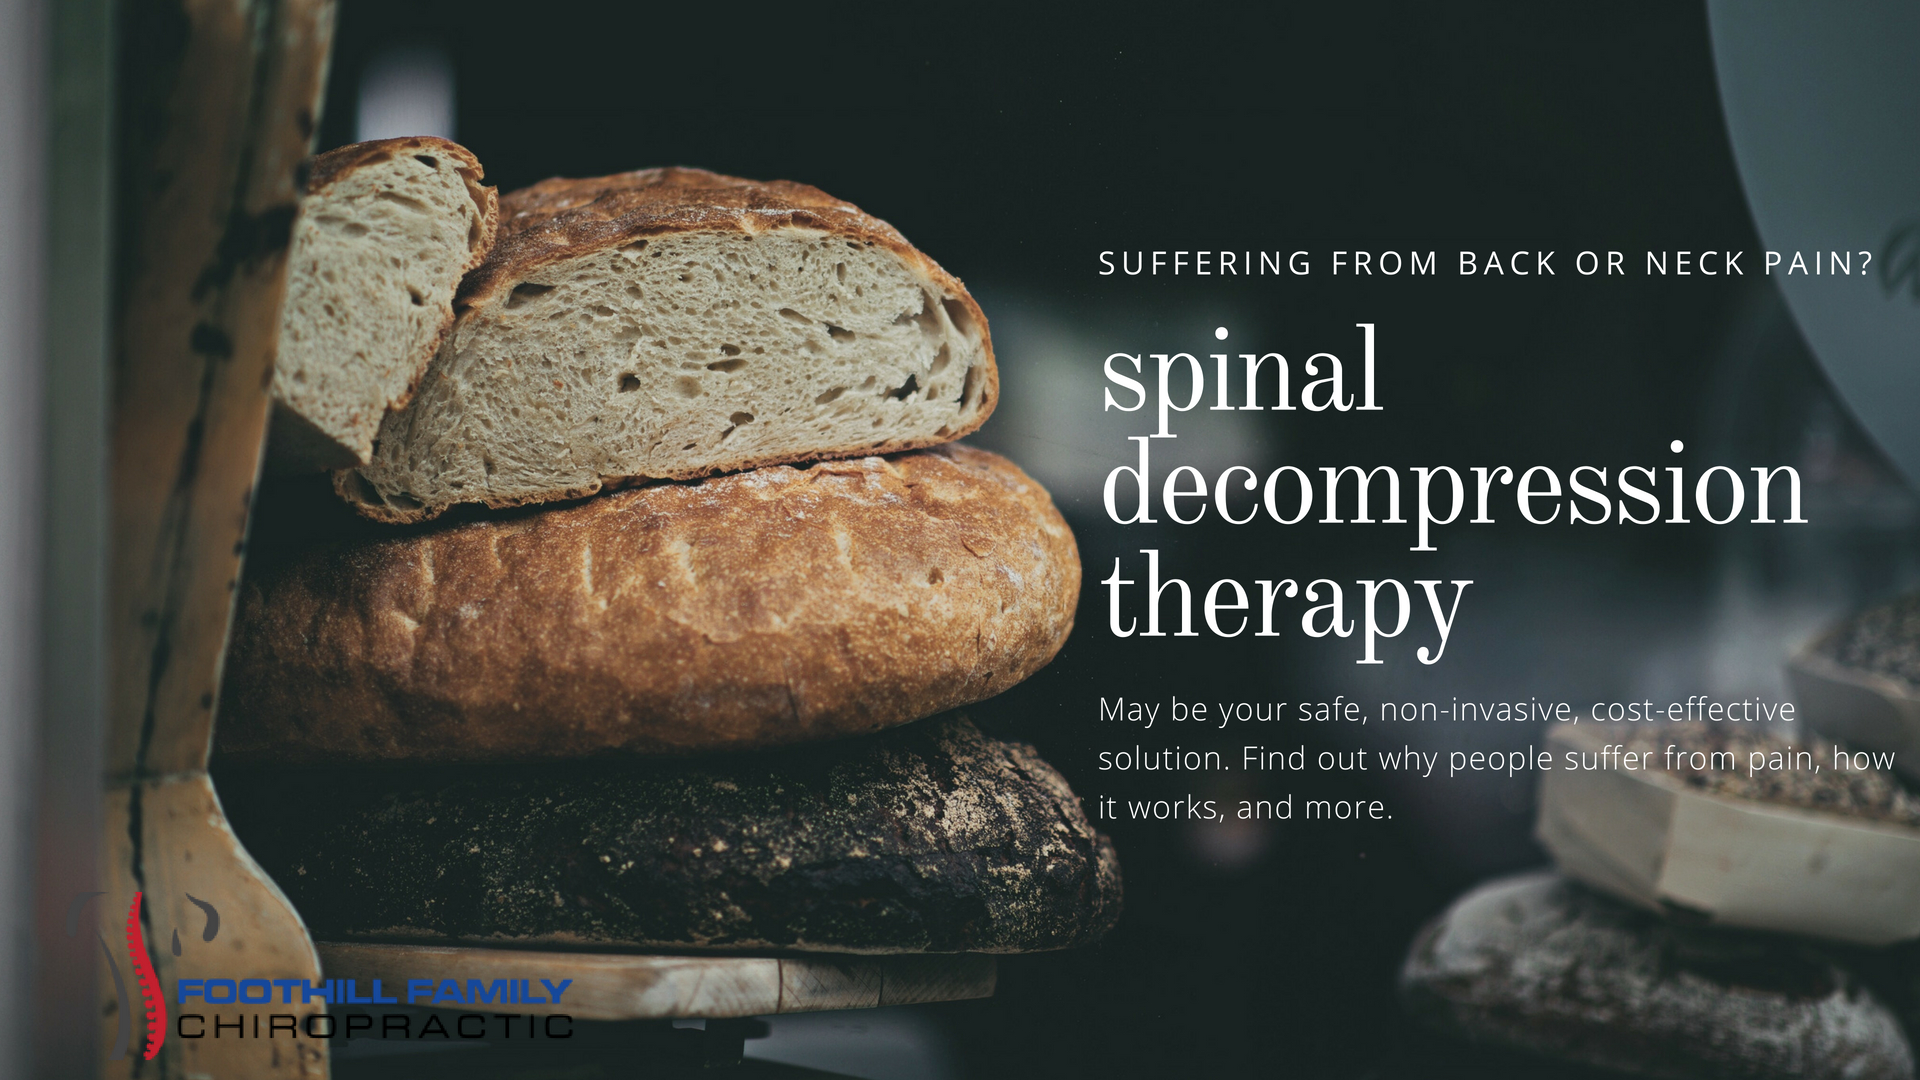 La Verne's Spinal Decompression Therapy